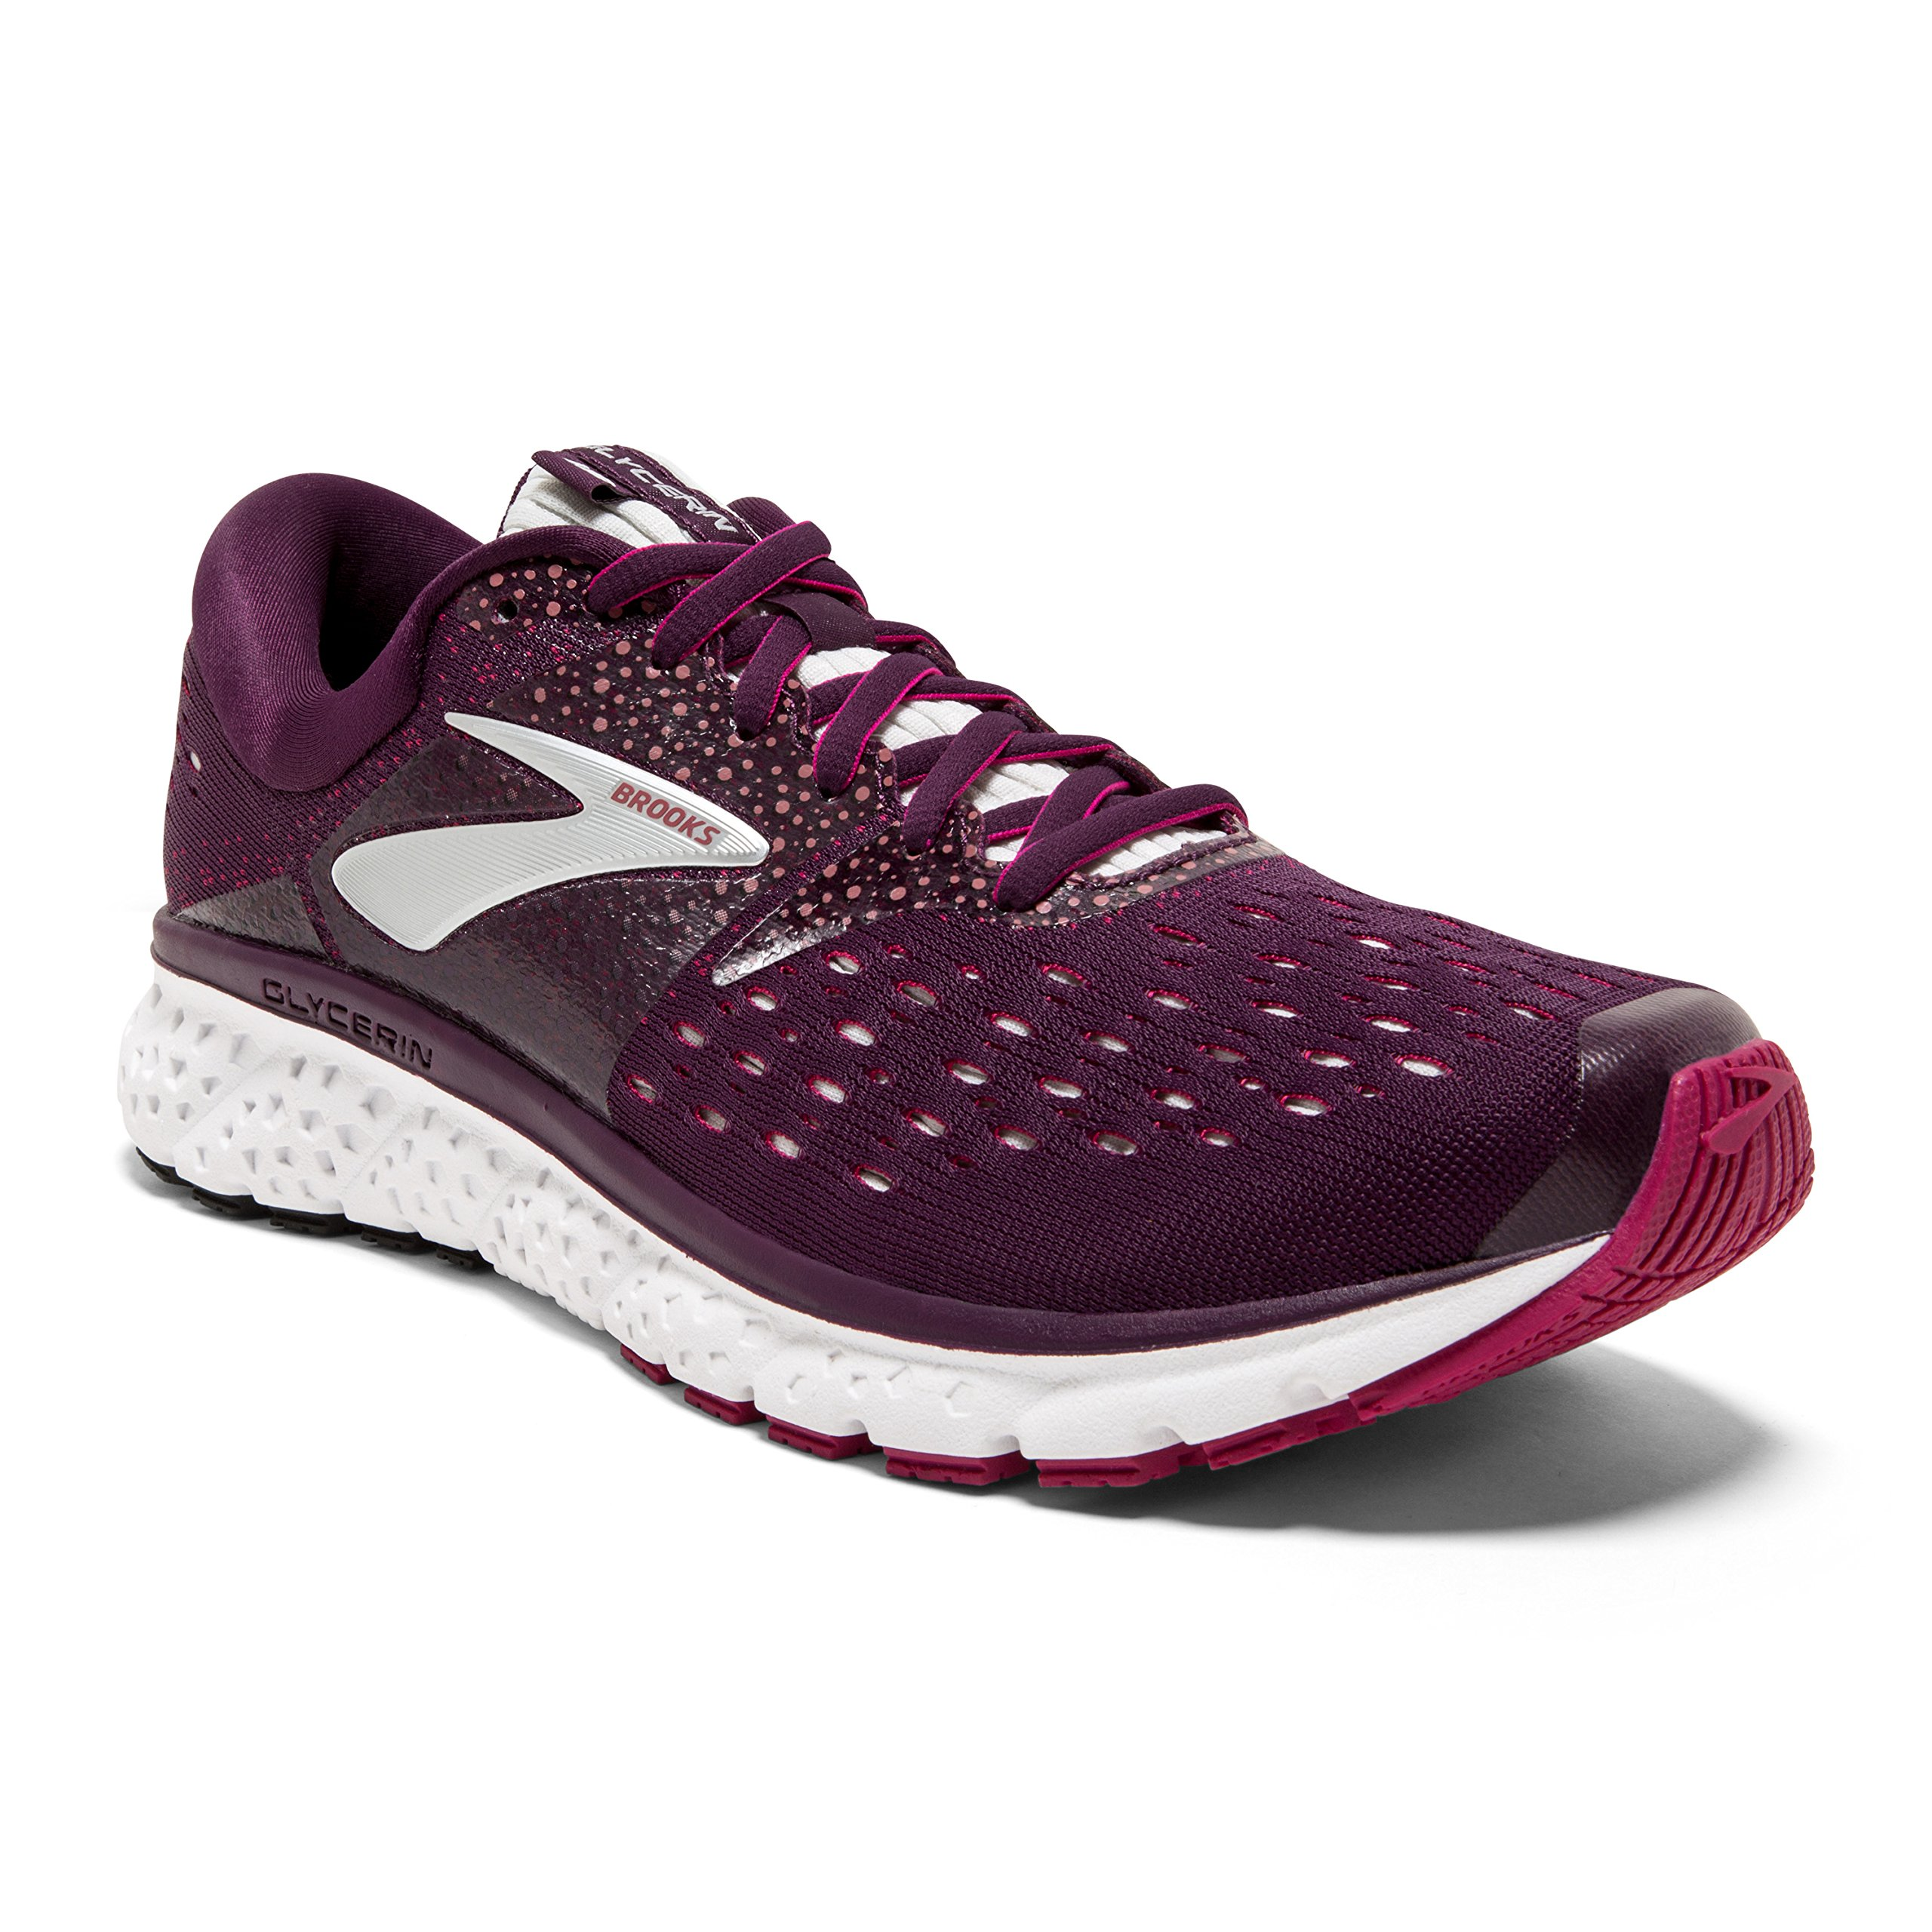 Brooks Womens Glycerin 16 - Purple/Pink/Grey - B - 9.0 by Brooks